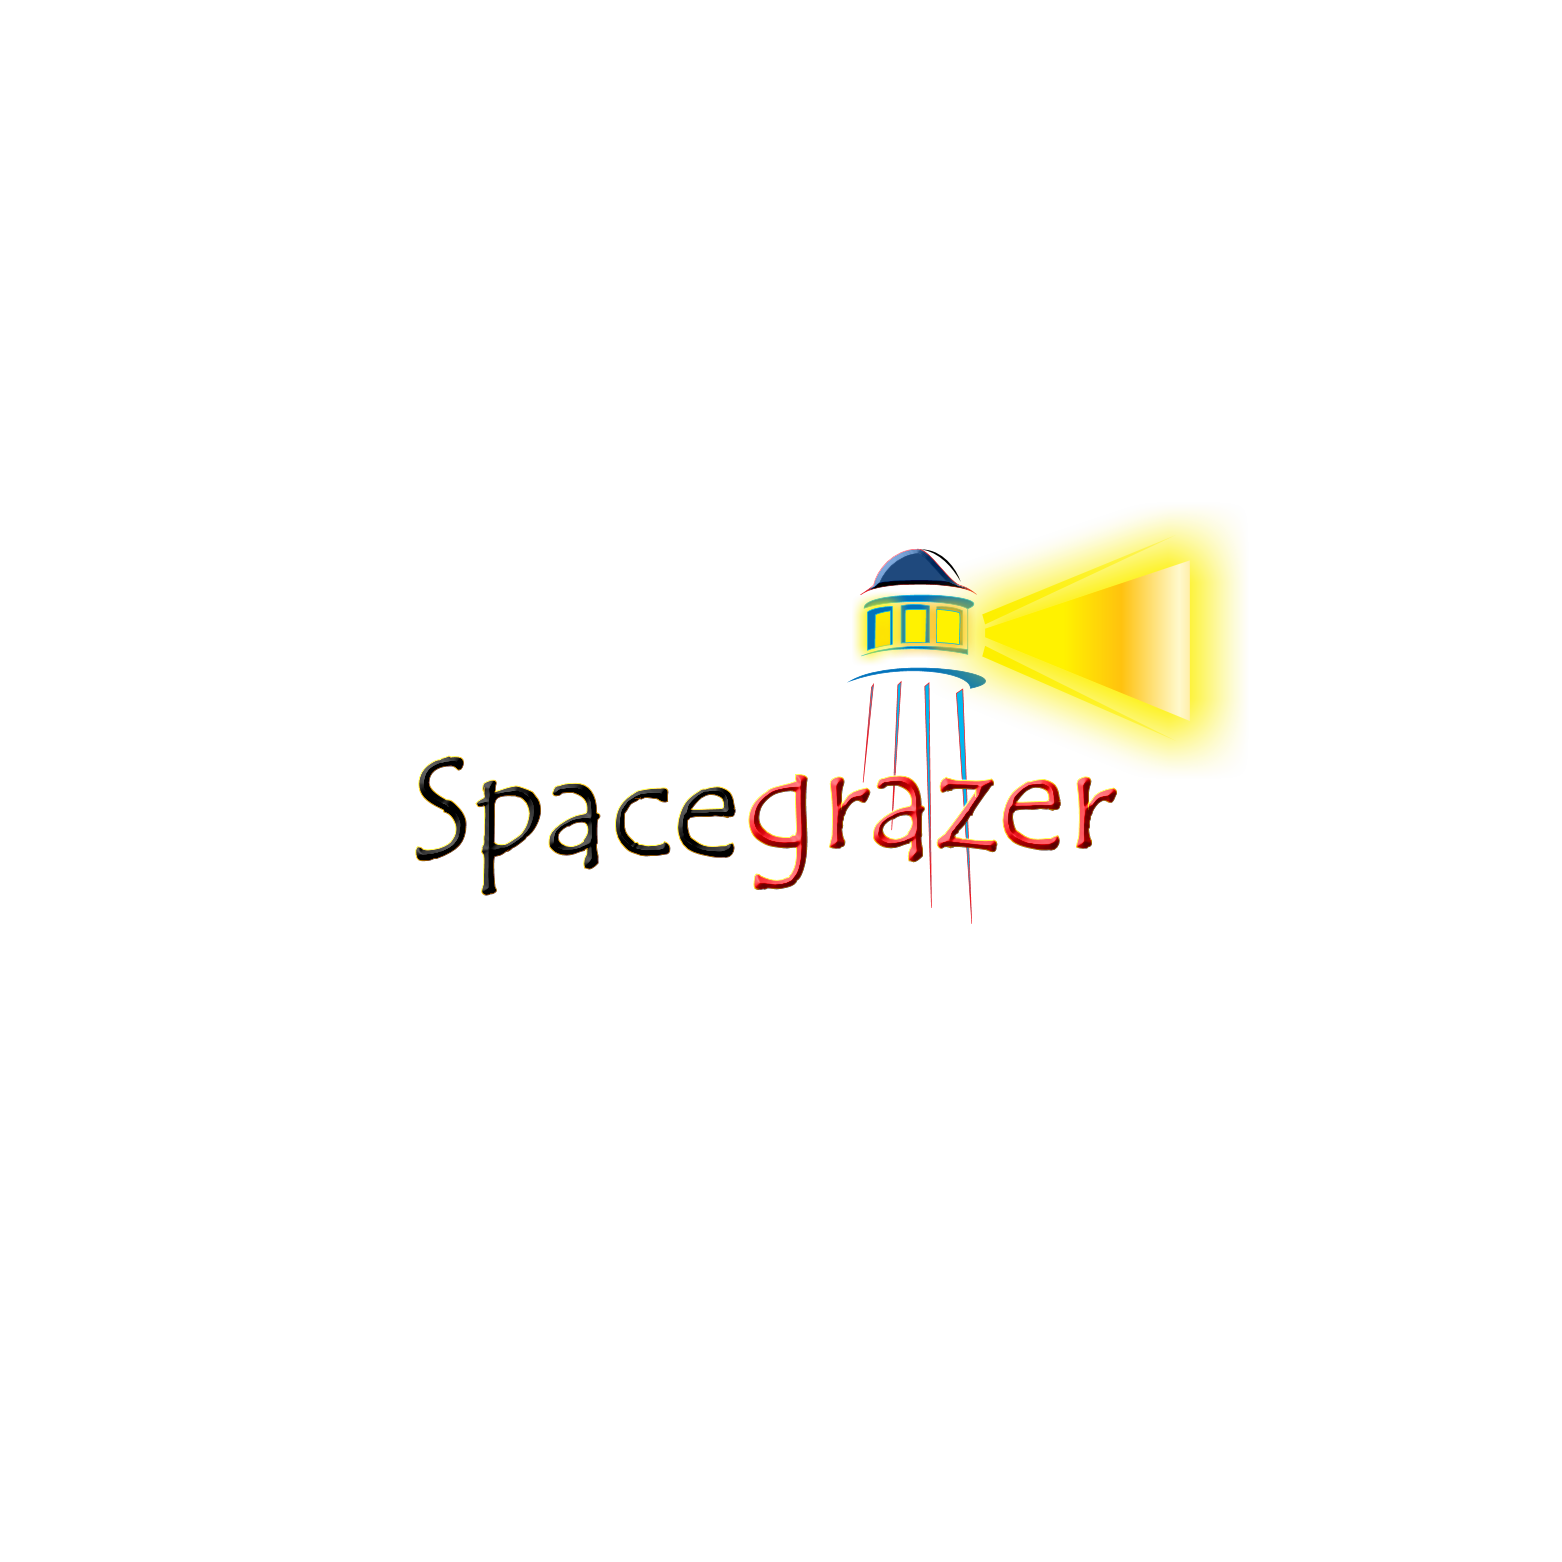 Logo Design by Steven Fitzpatrick - Entry No. 33 in the Logo Design Contest Fun Logo Design for Spacegrazer.